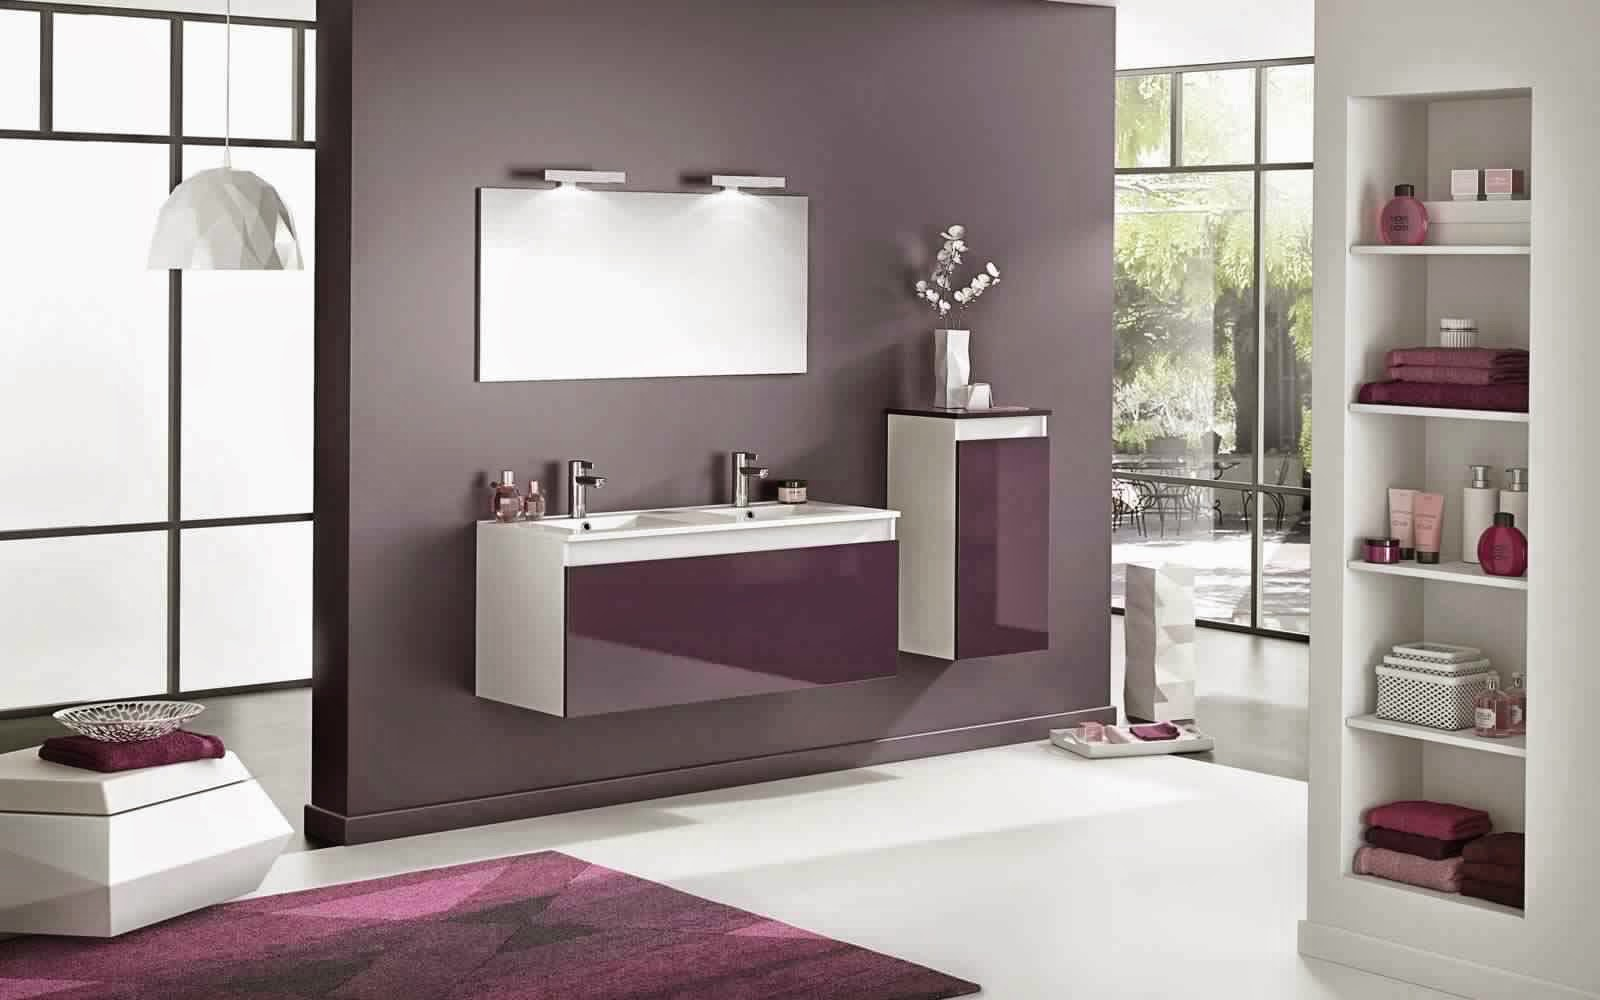 salle de bain vitr am nagement installation lionel fouassier. Black Bedroom Furniture Sets. Home Design Ideas